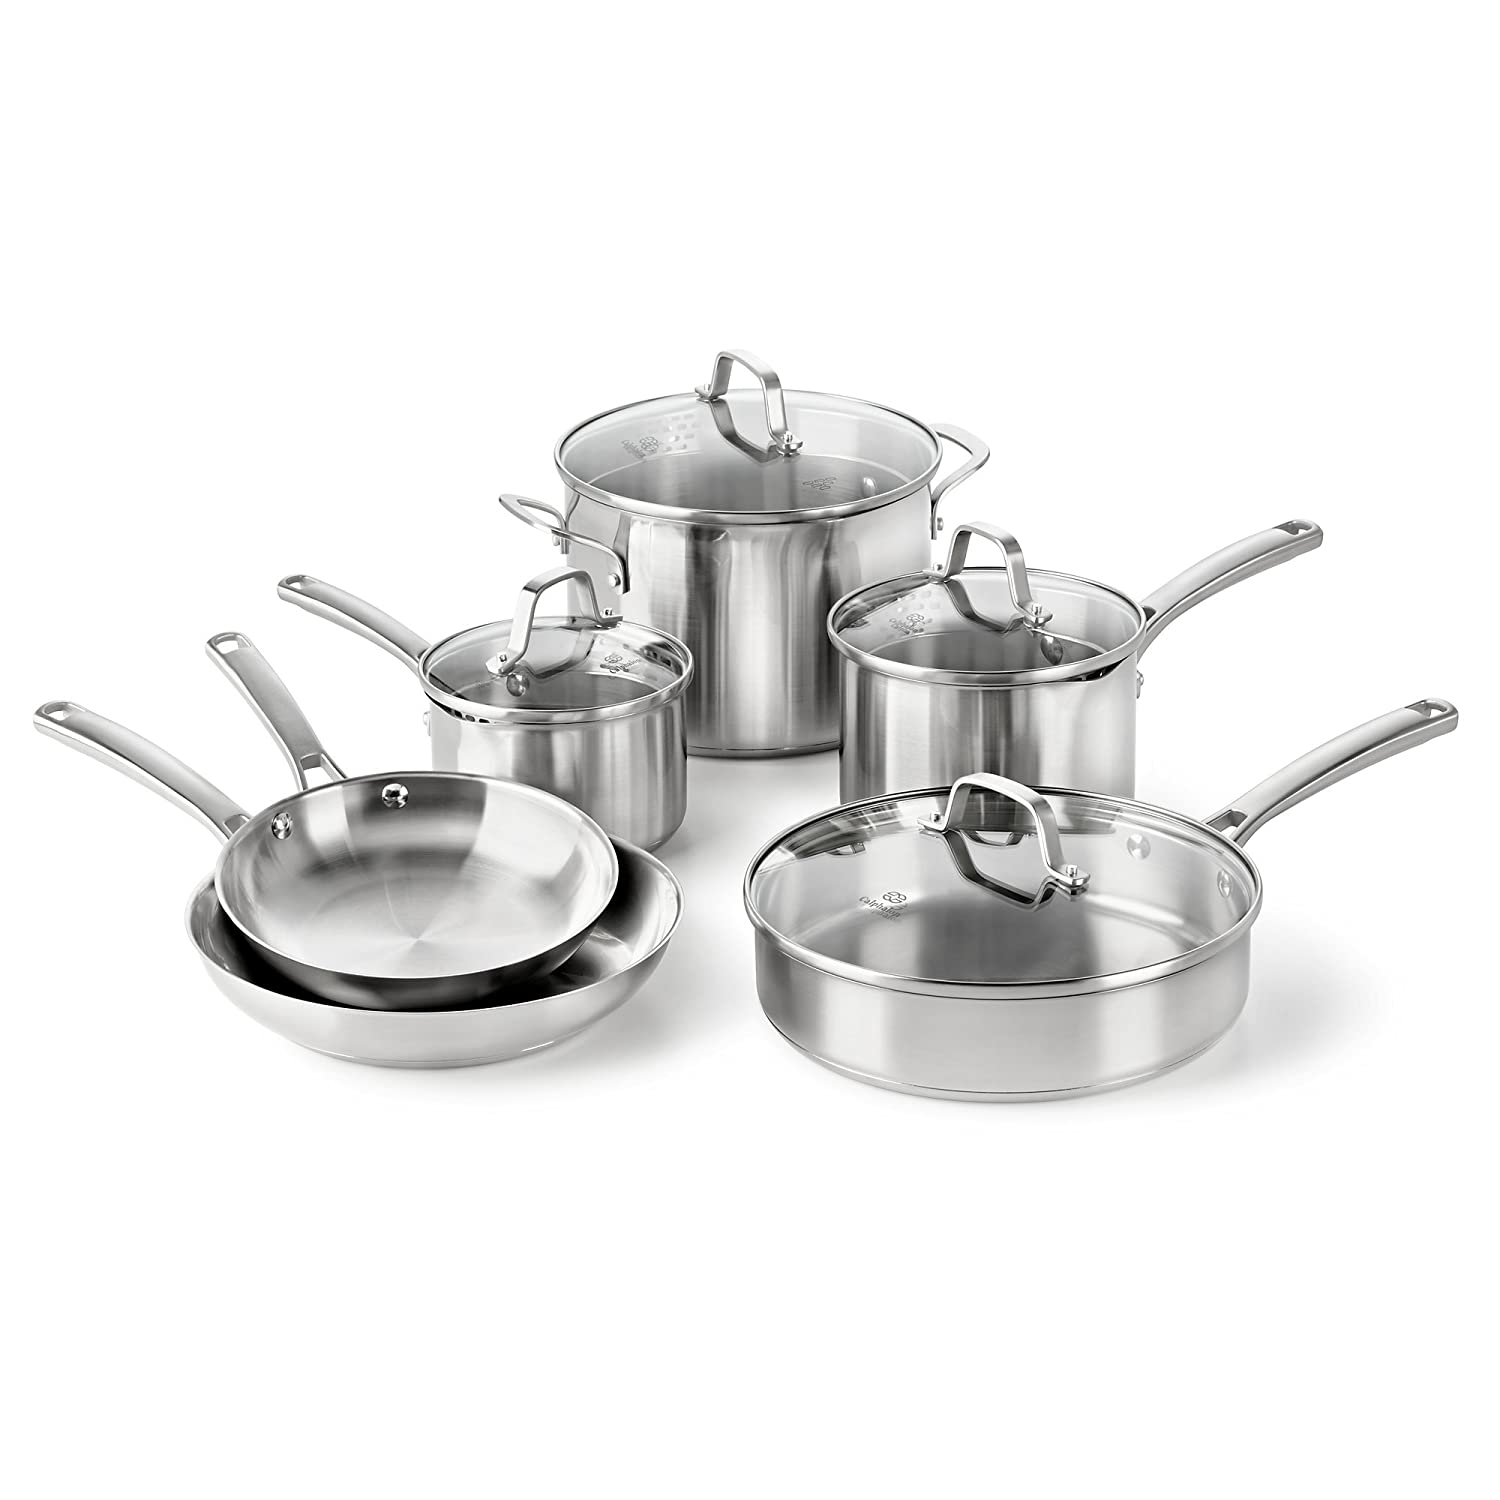 Calphalon Classic Stainless Steel Cookware Set, 10-Piece Review